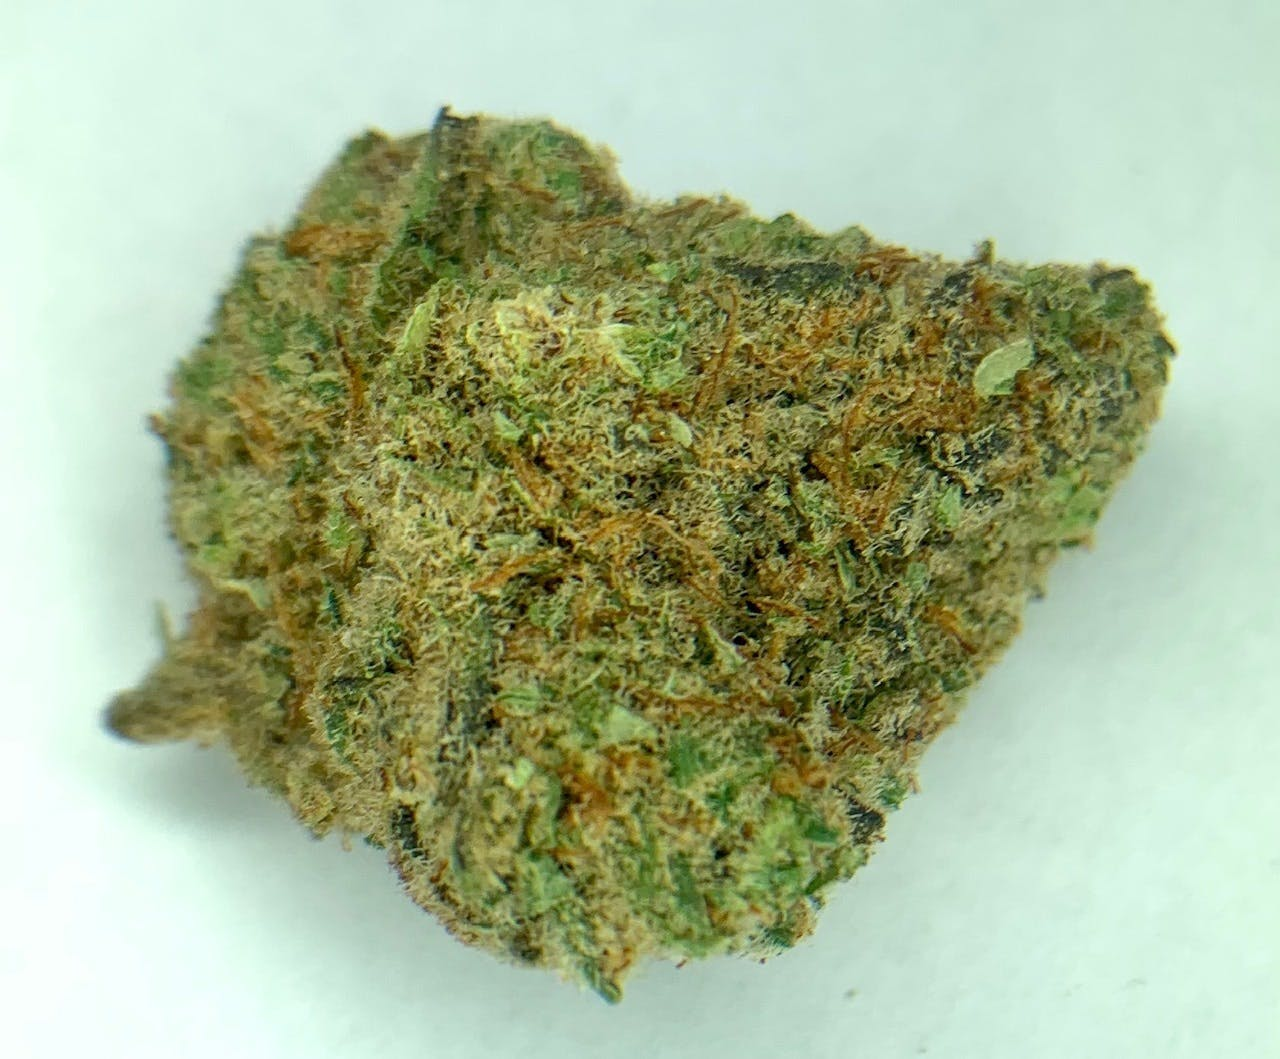 marijuana-dispensaries-549-n-western-ave-los-angeles-exclusive-slimer